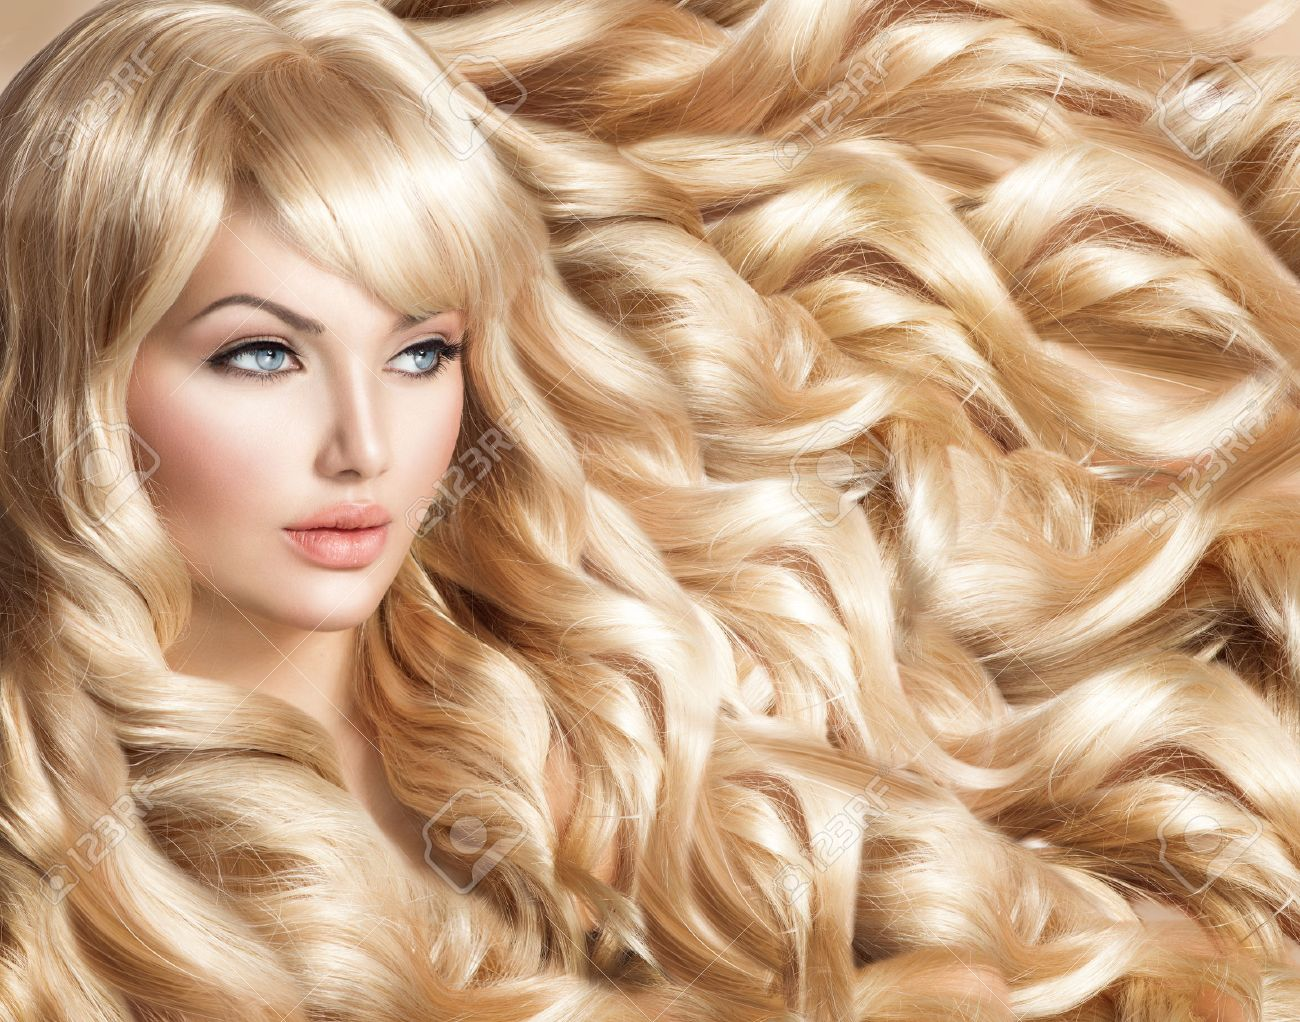 Beautiful Model Girl With Long Curly Blond Hair Stock Photo Picture